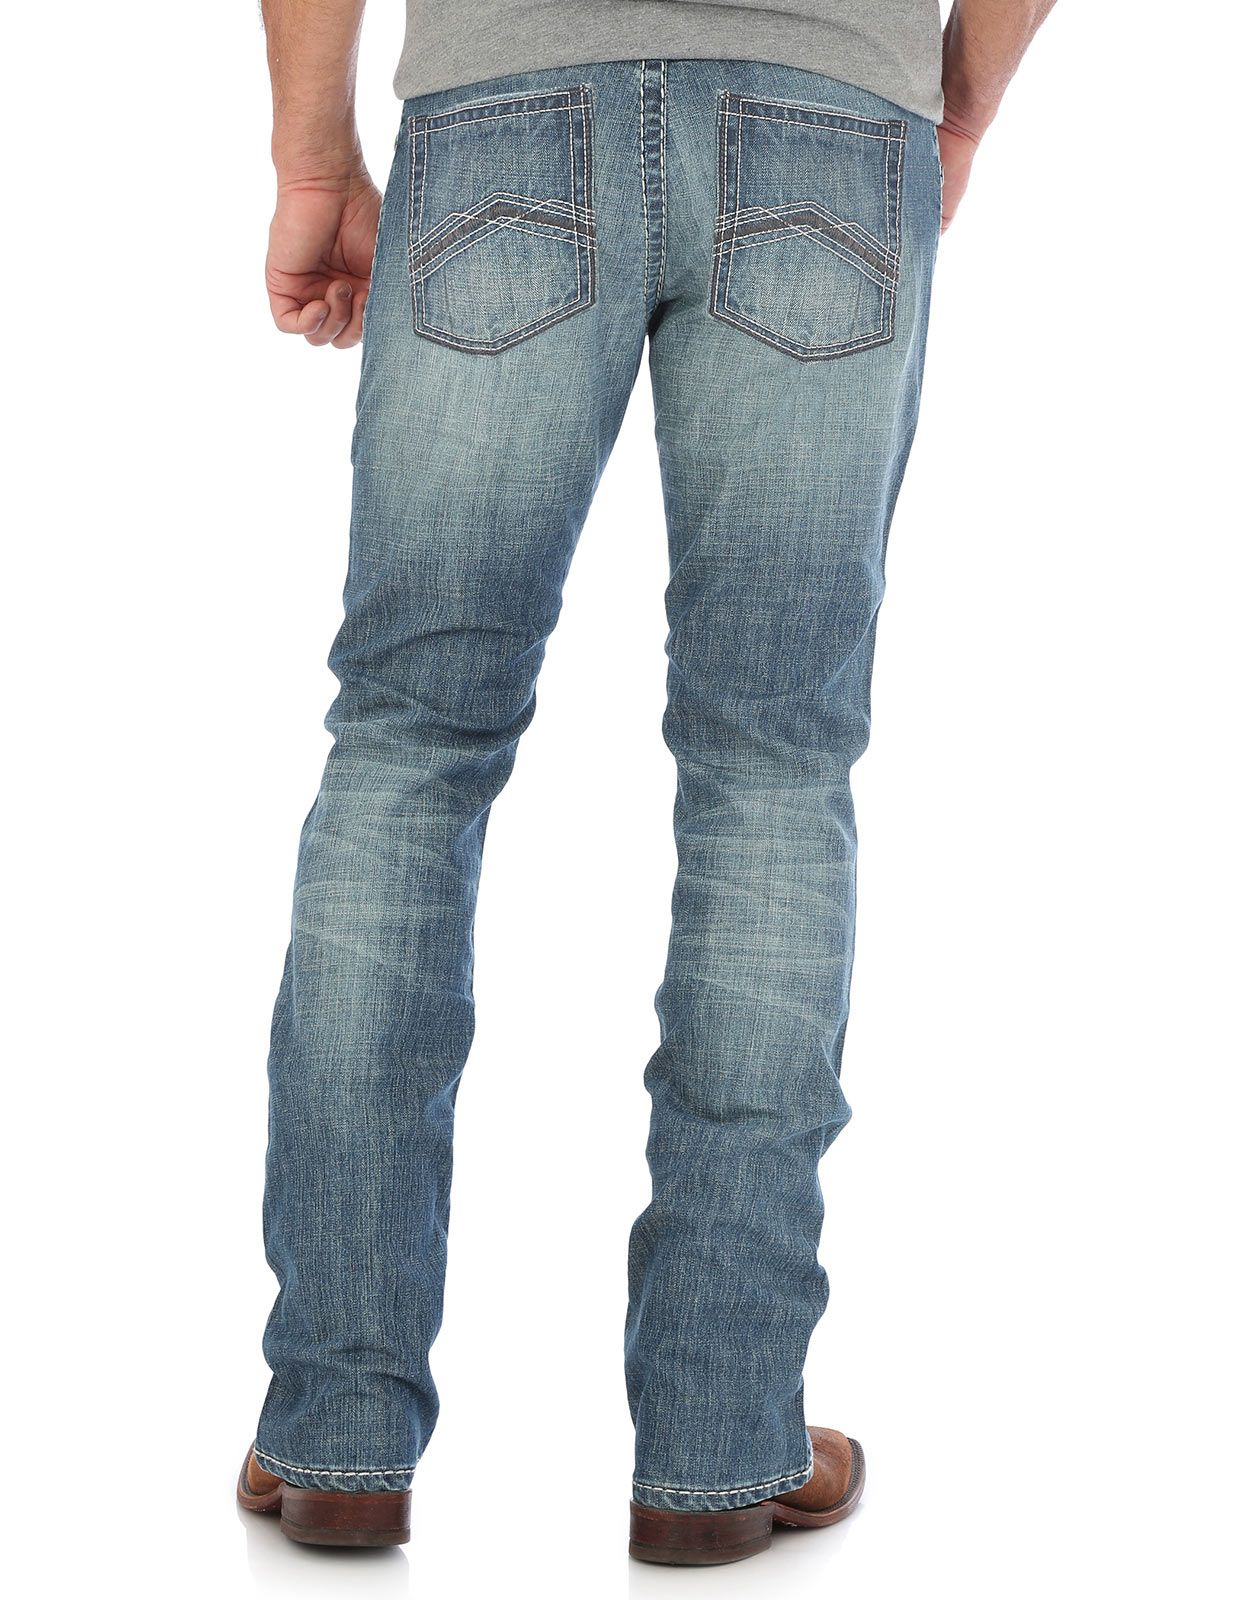 Wrangler Men's 44 Stretch Low Rise Slim Fit Straight Leg Jeans - Red Bluff